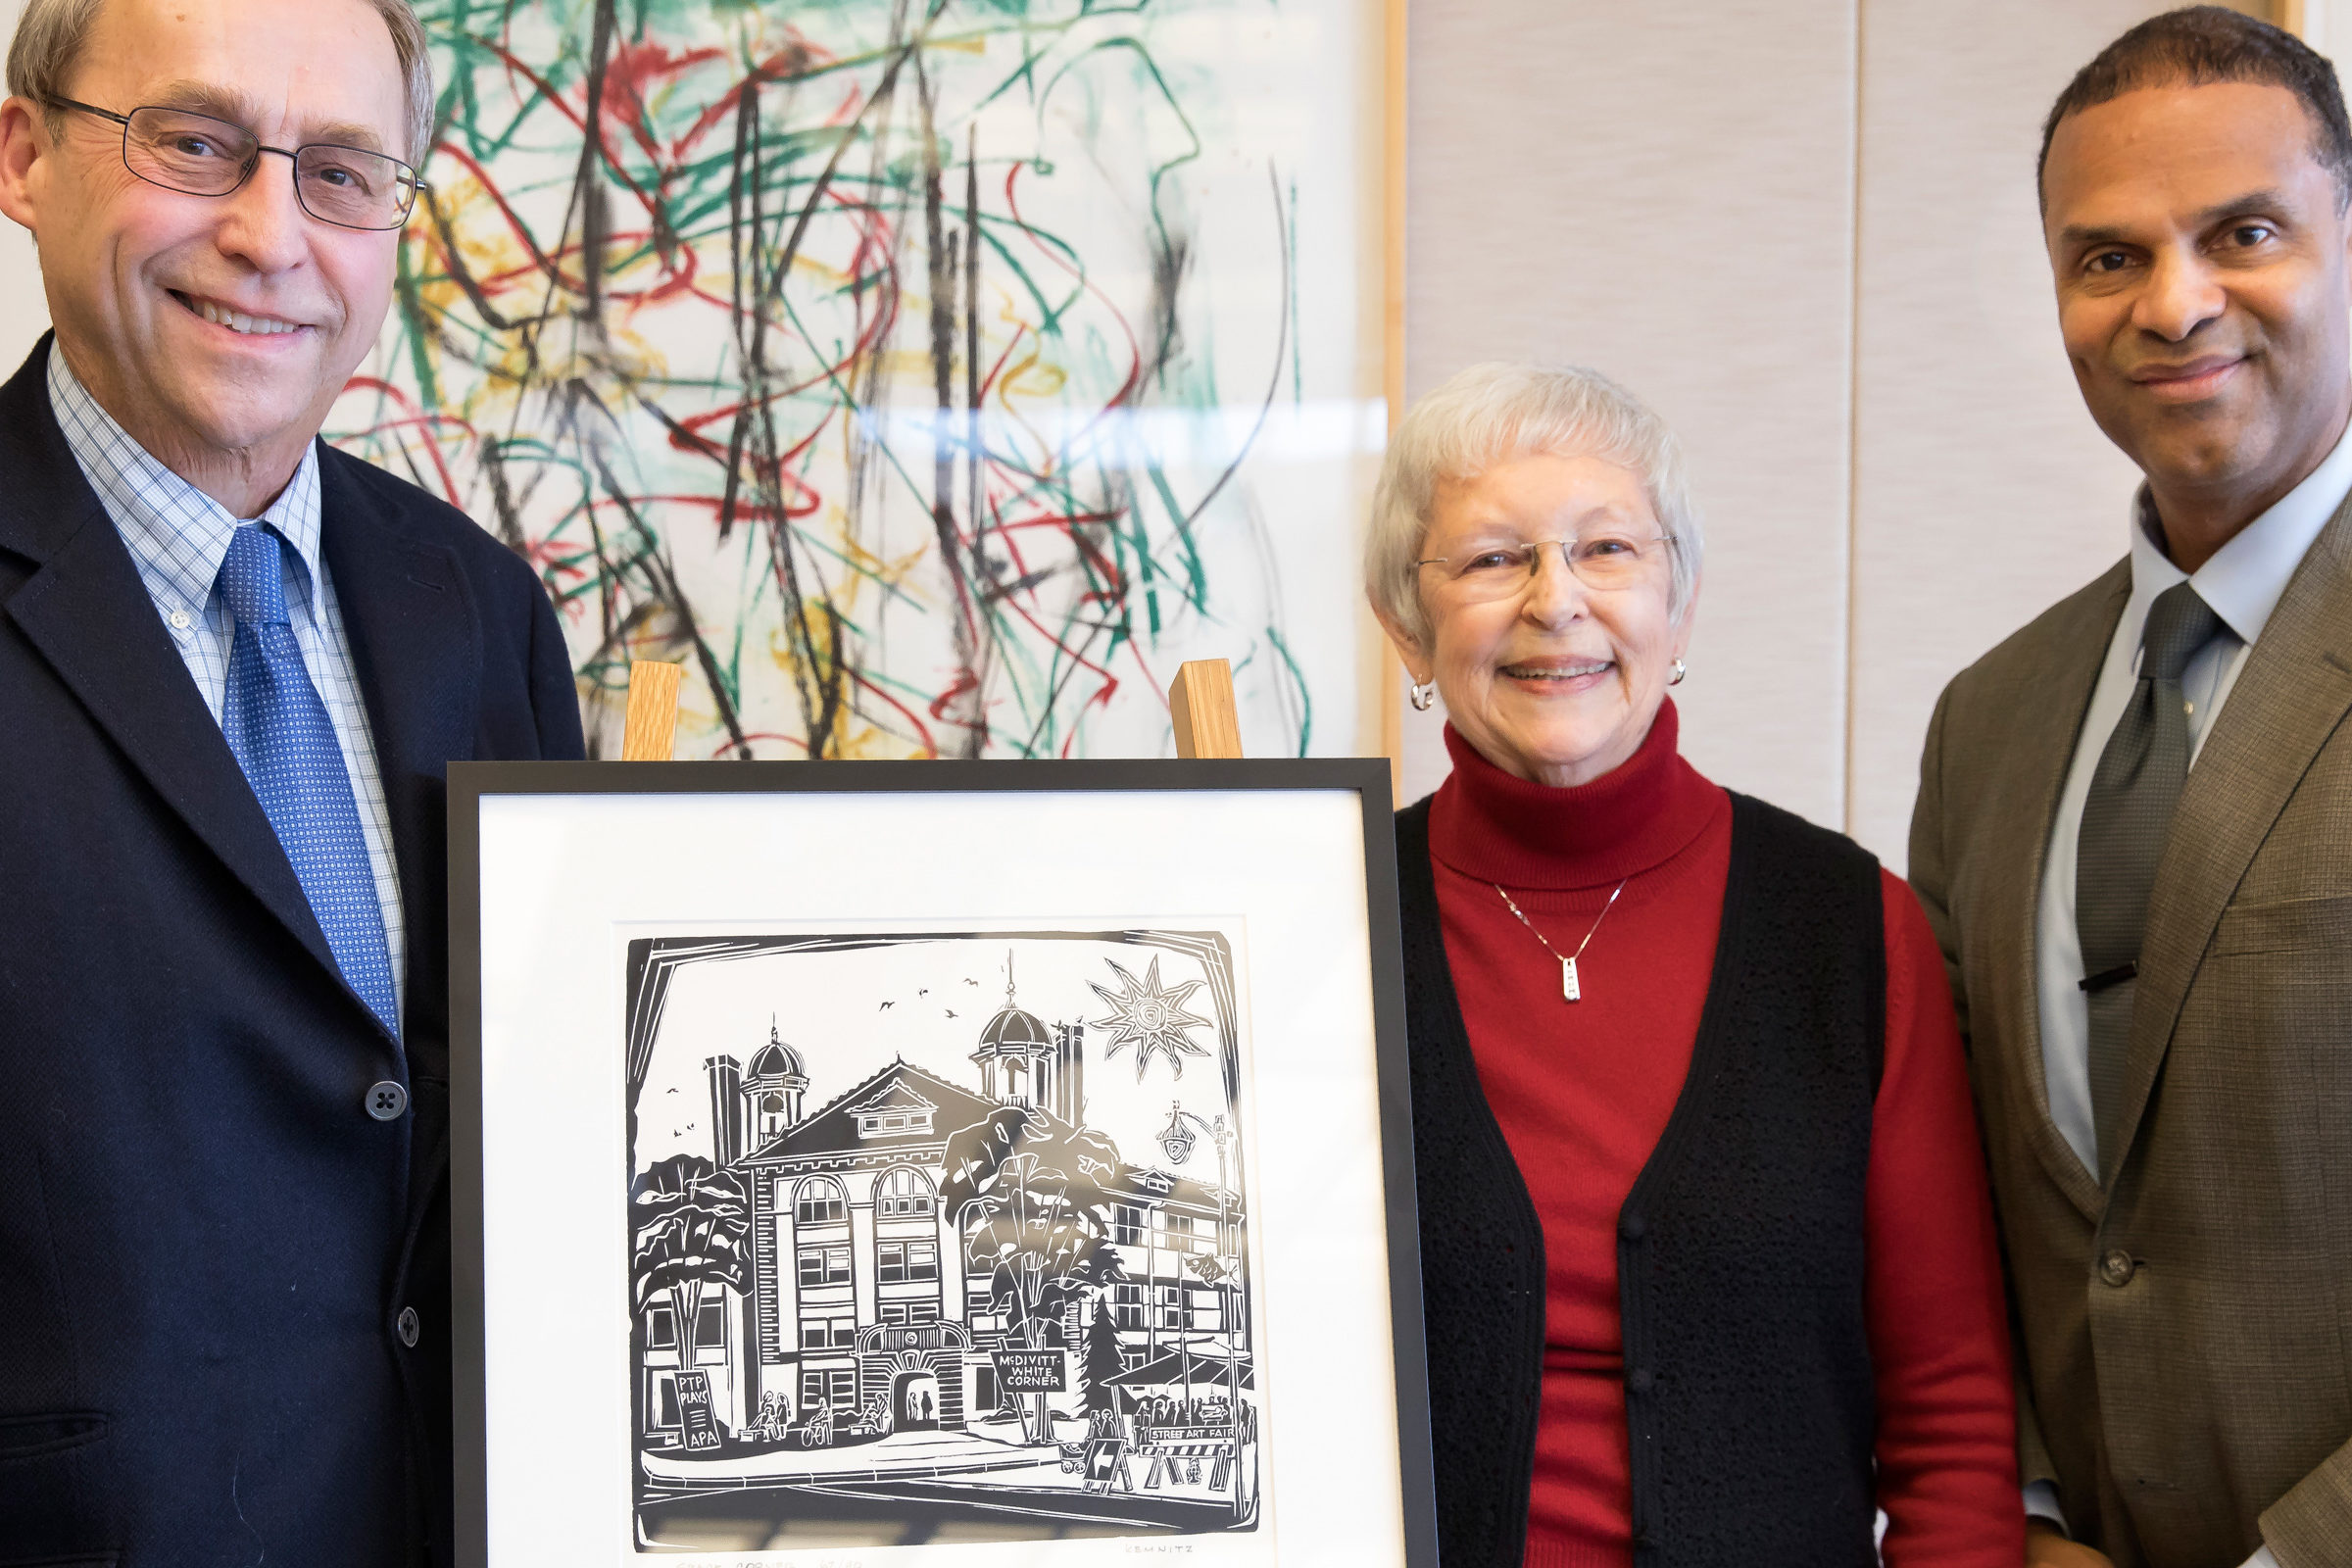 Professor Gilgenbach, Gladys Knoll, and Alec D. Gallimore stand together for a photo